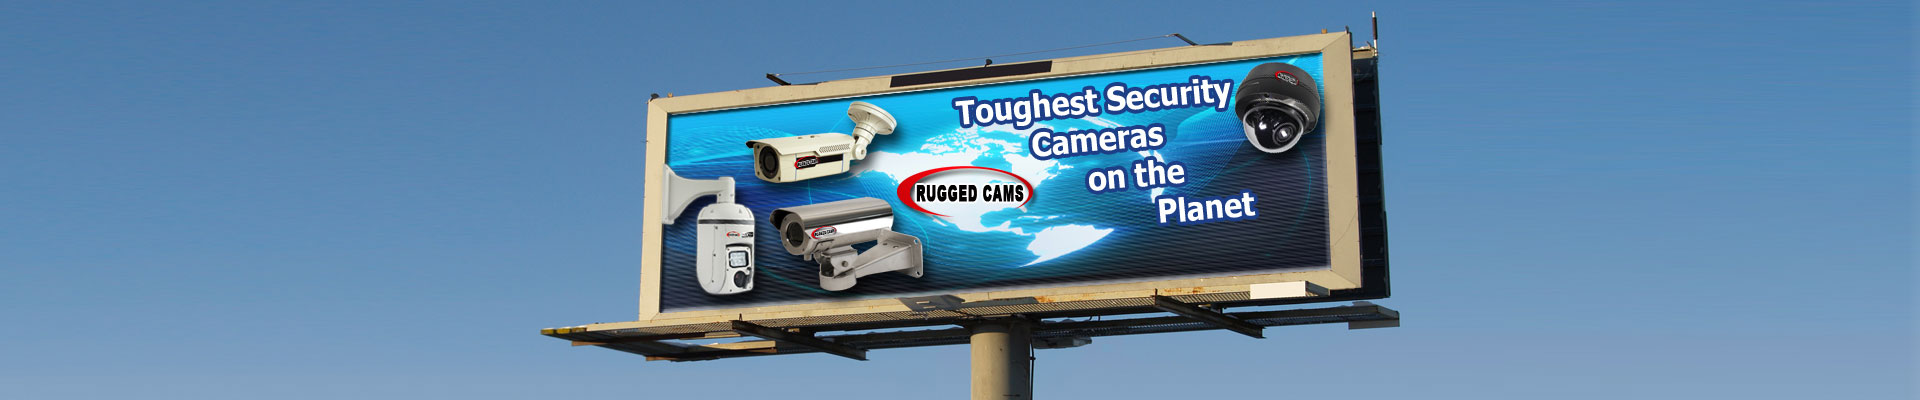 2013RuggedHomePageBannerFactoryDirect - Rugged Cams Makes Cameras In Many Flavors